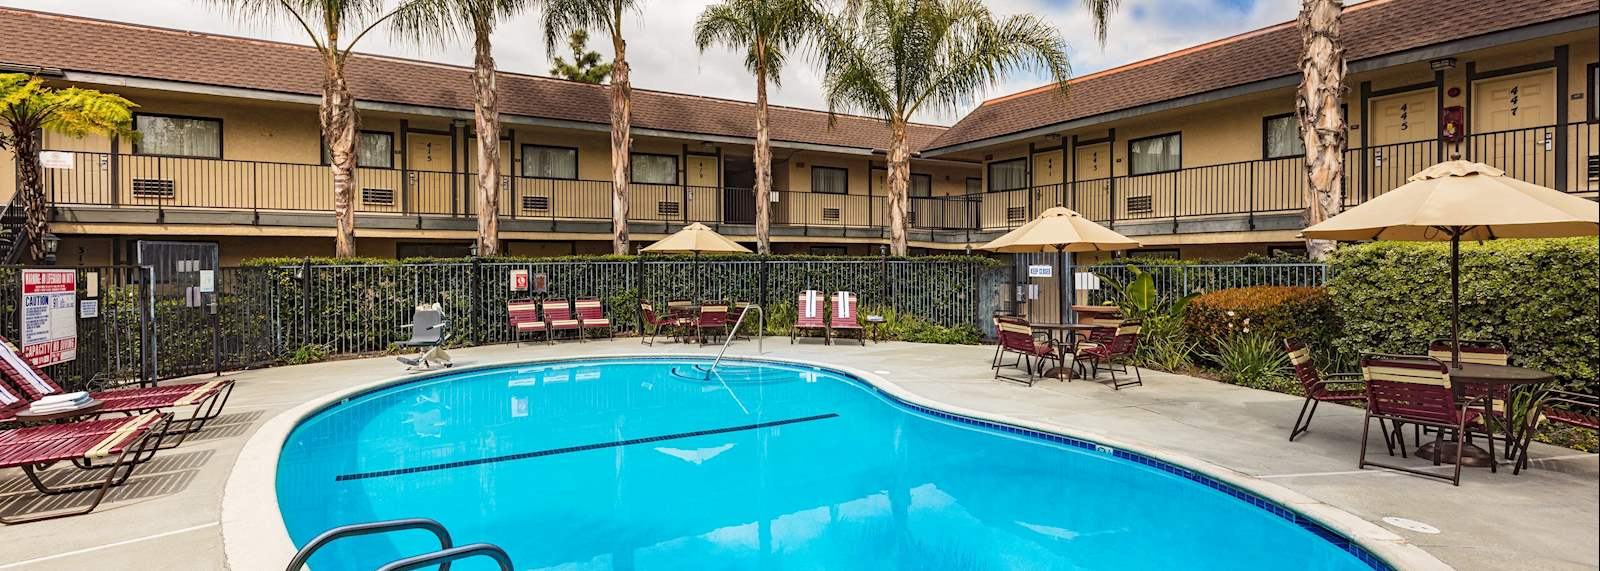 Key inn and suites Tustin - Pool at the lodge